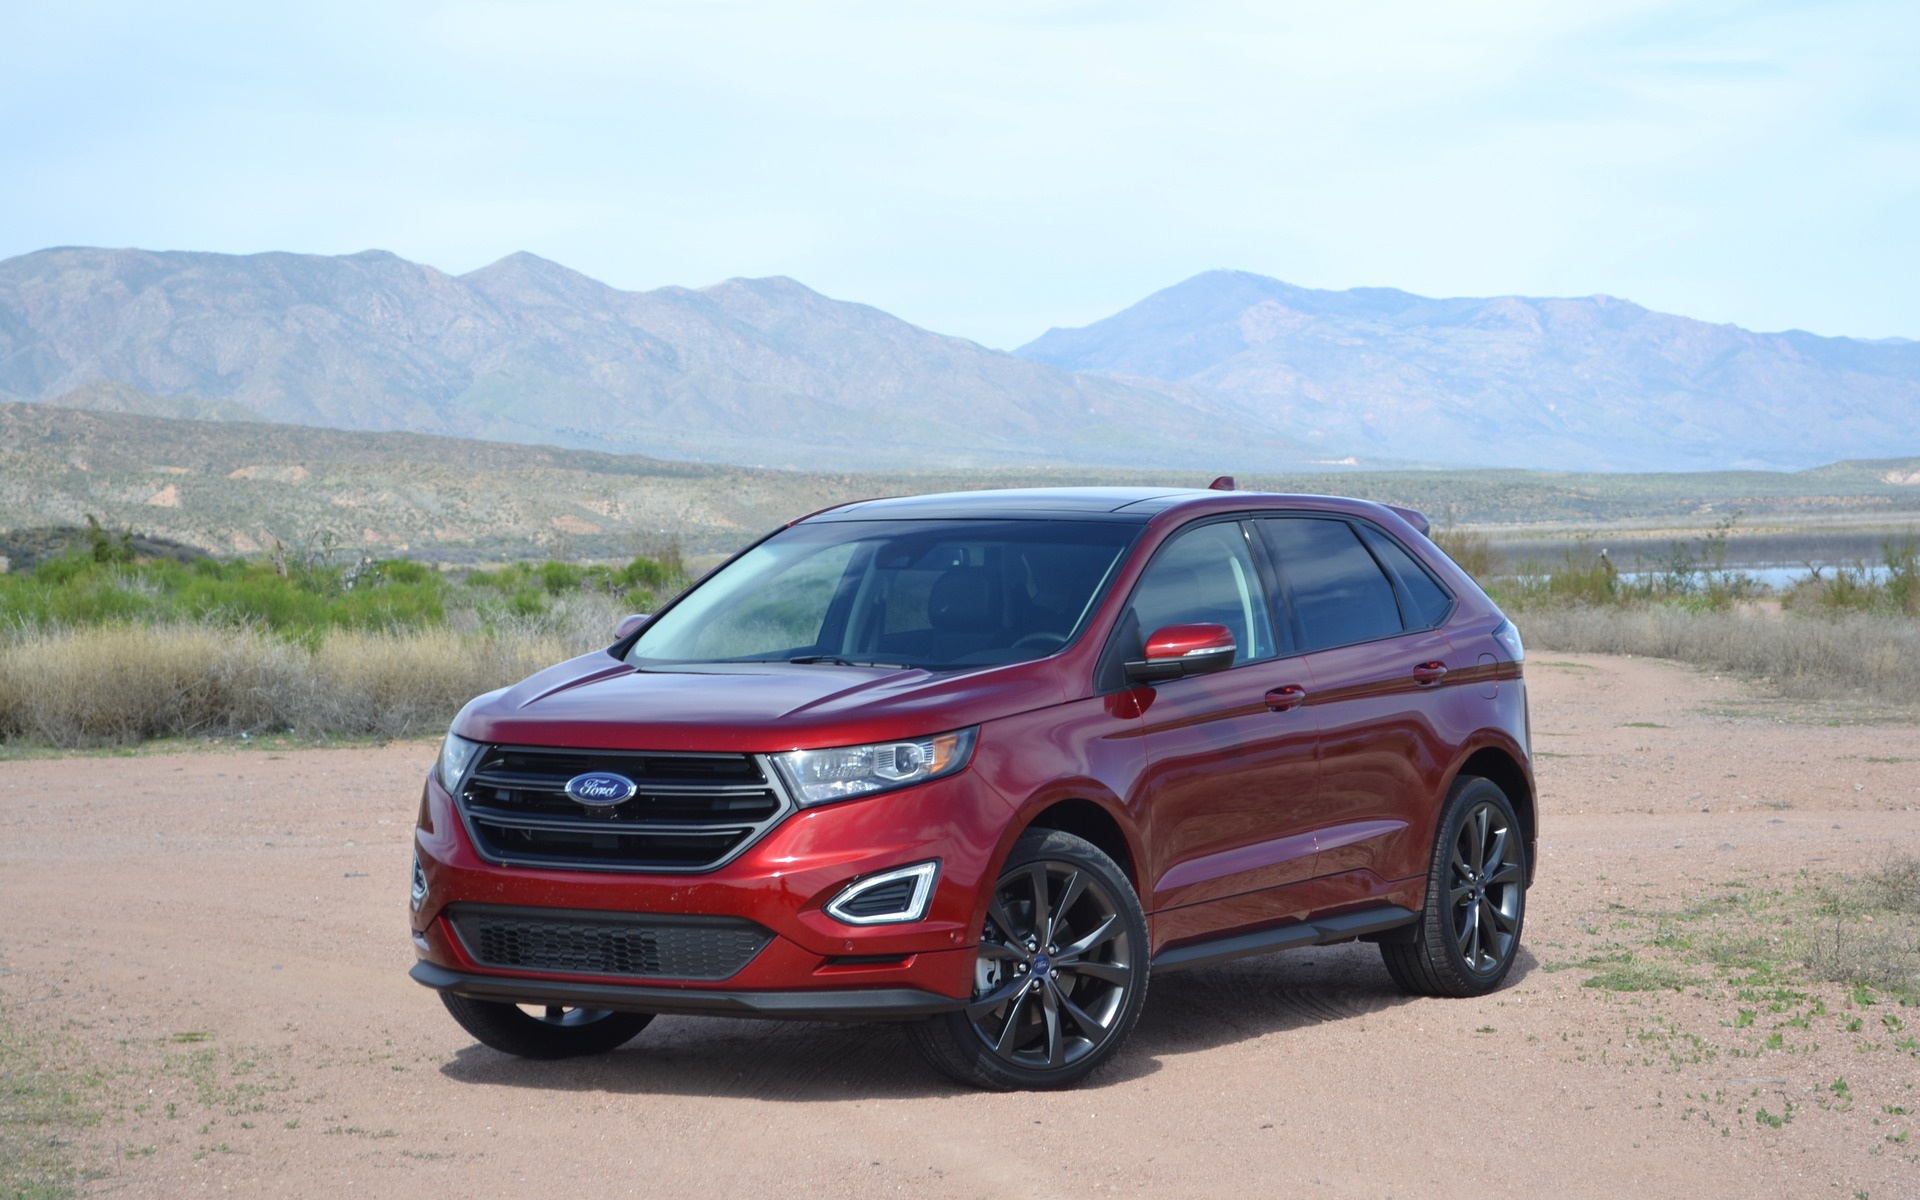 2016 Ford Edge News Reviews Picture Galleries And Videos The